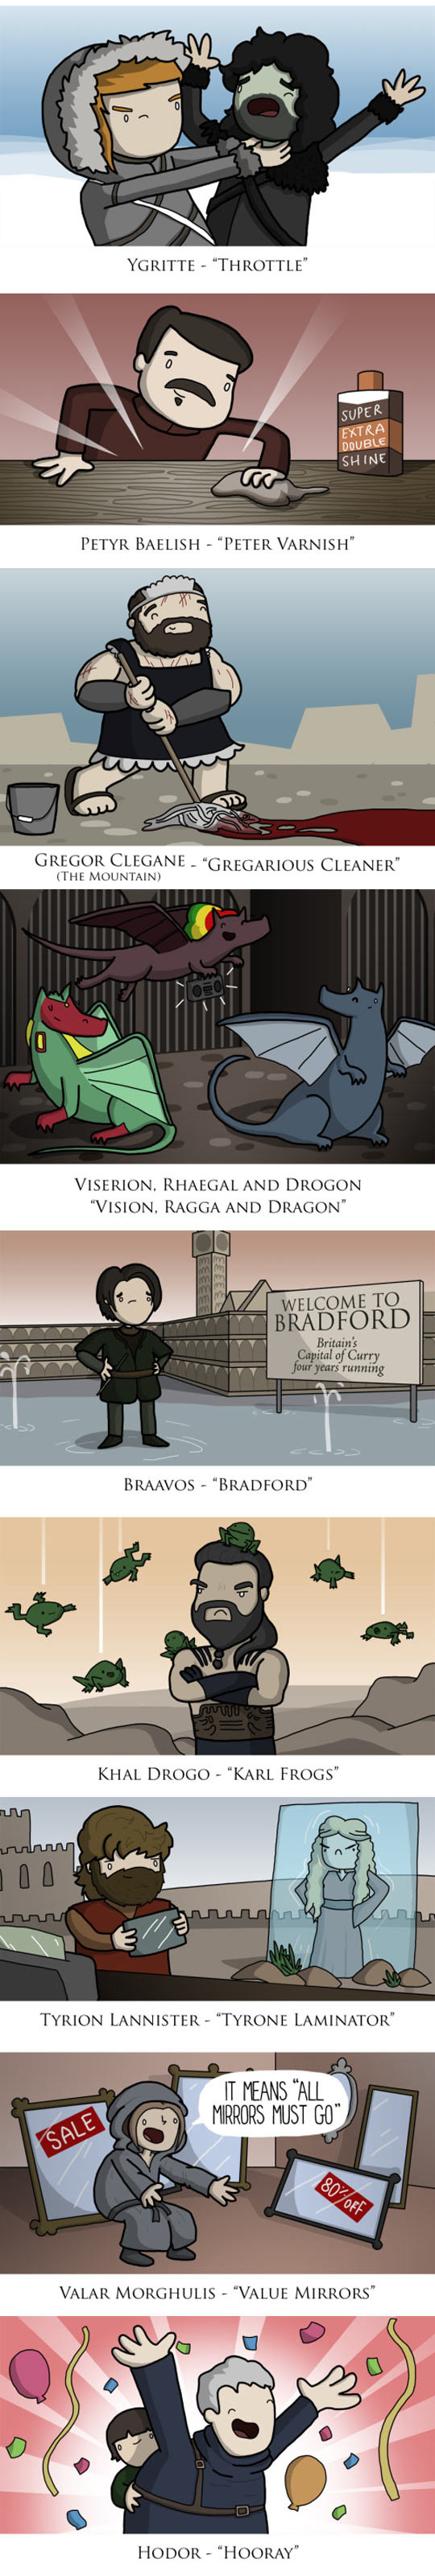 funny-Game-Thrones-Autocorrect-Ygritte-names